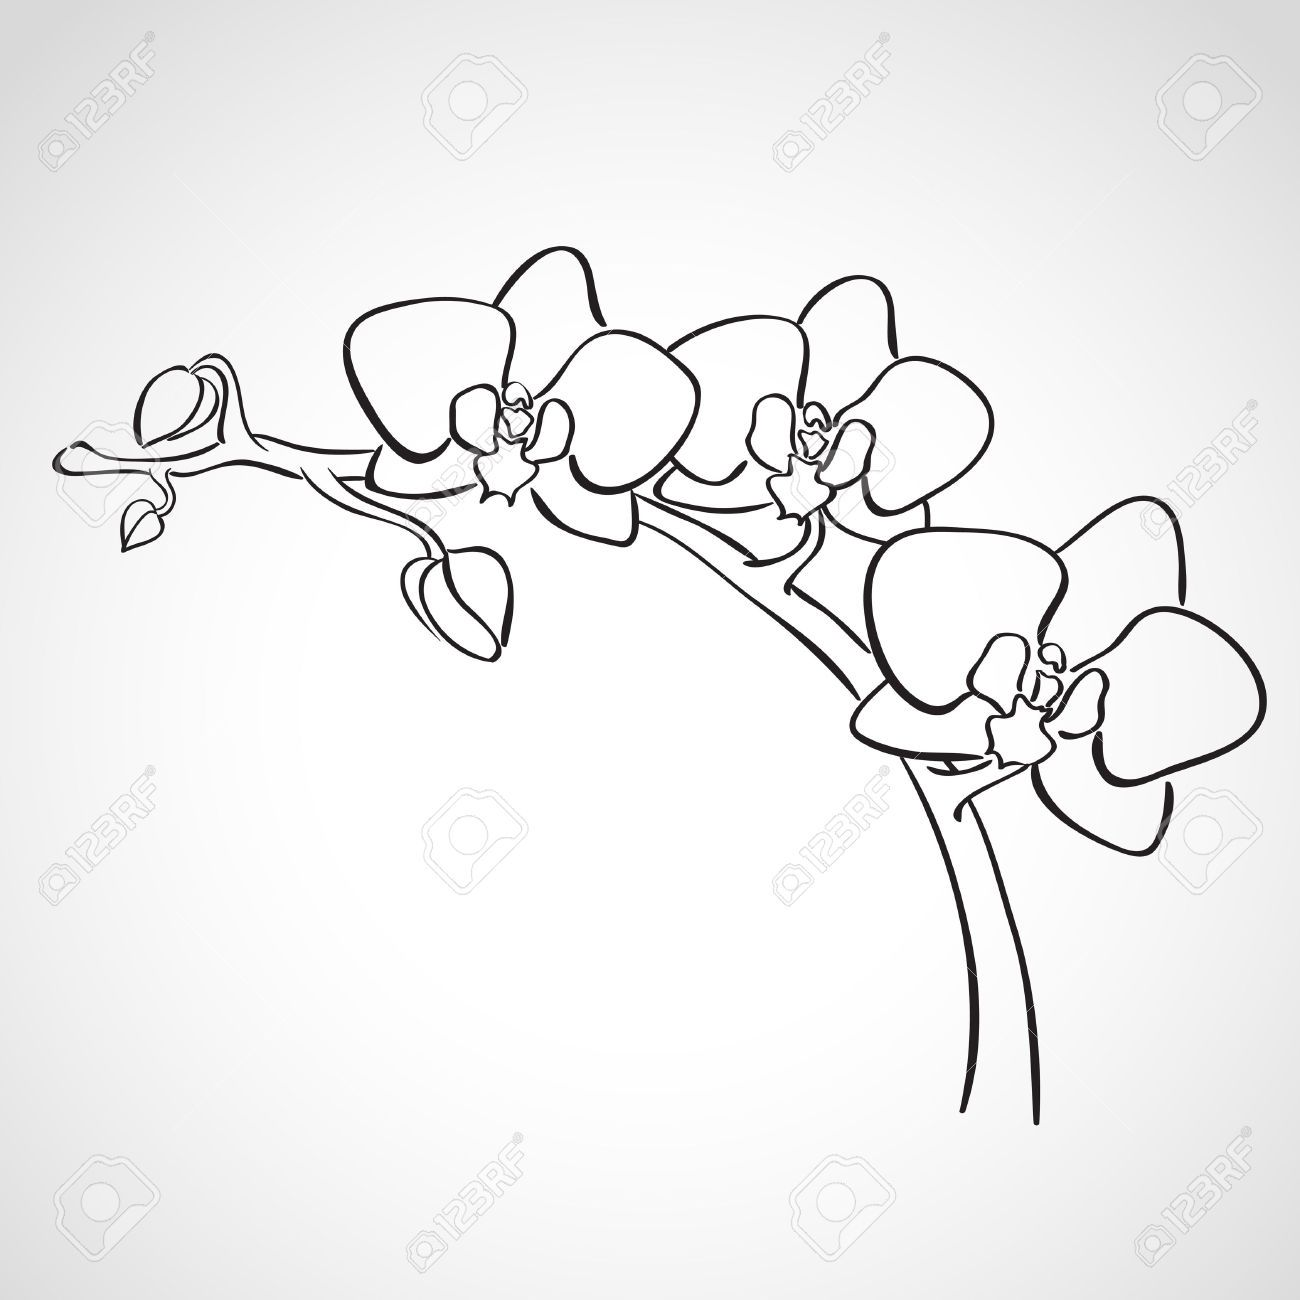 Orchid Flower Line Drawing : Sketch orchid branch hand drawn ink style stock